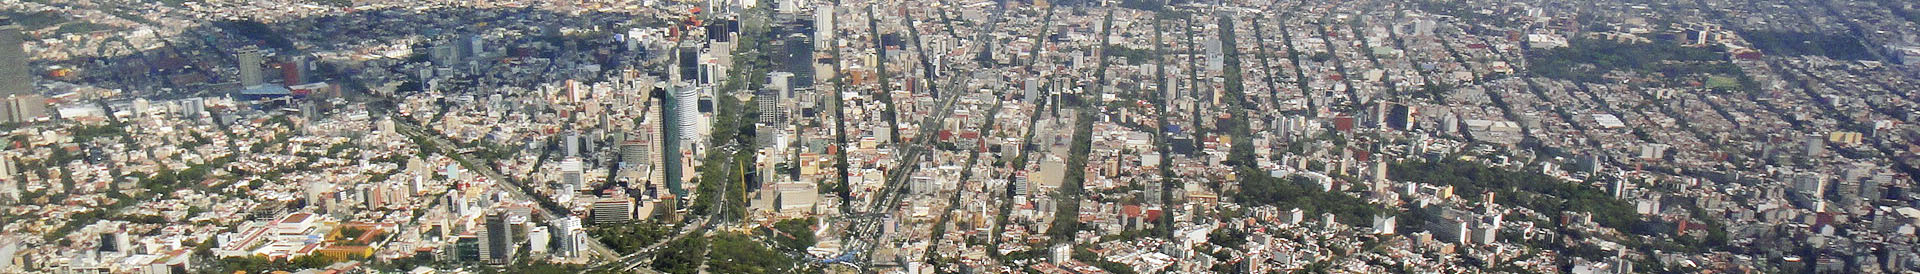 Mexico CityCondesa and Roma Travel guide at Wikivoyage